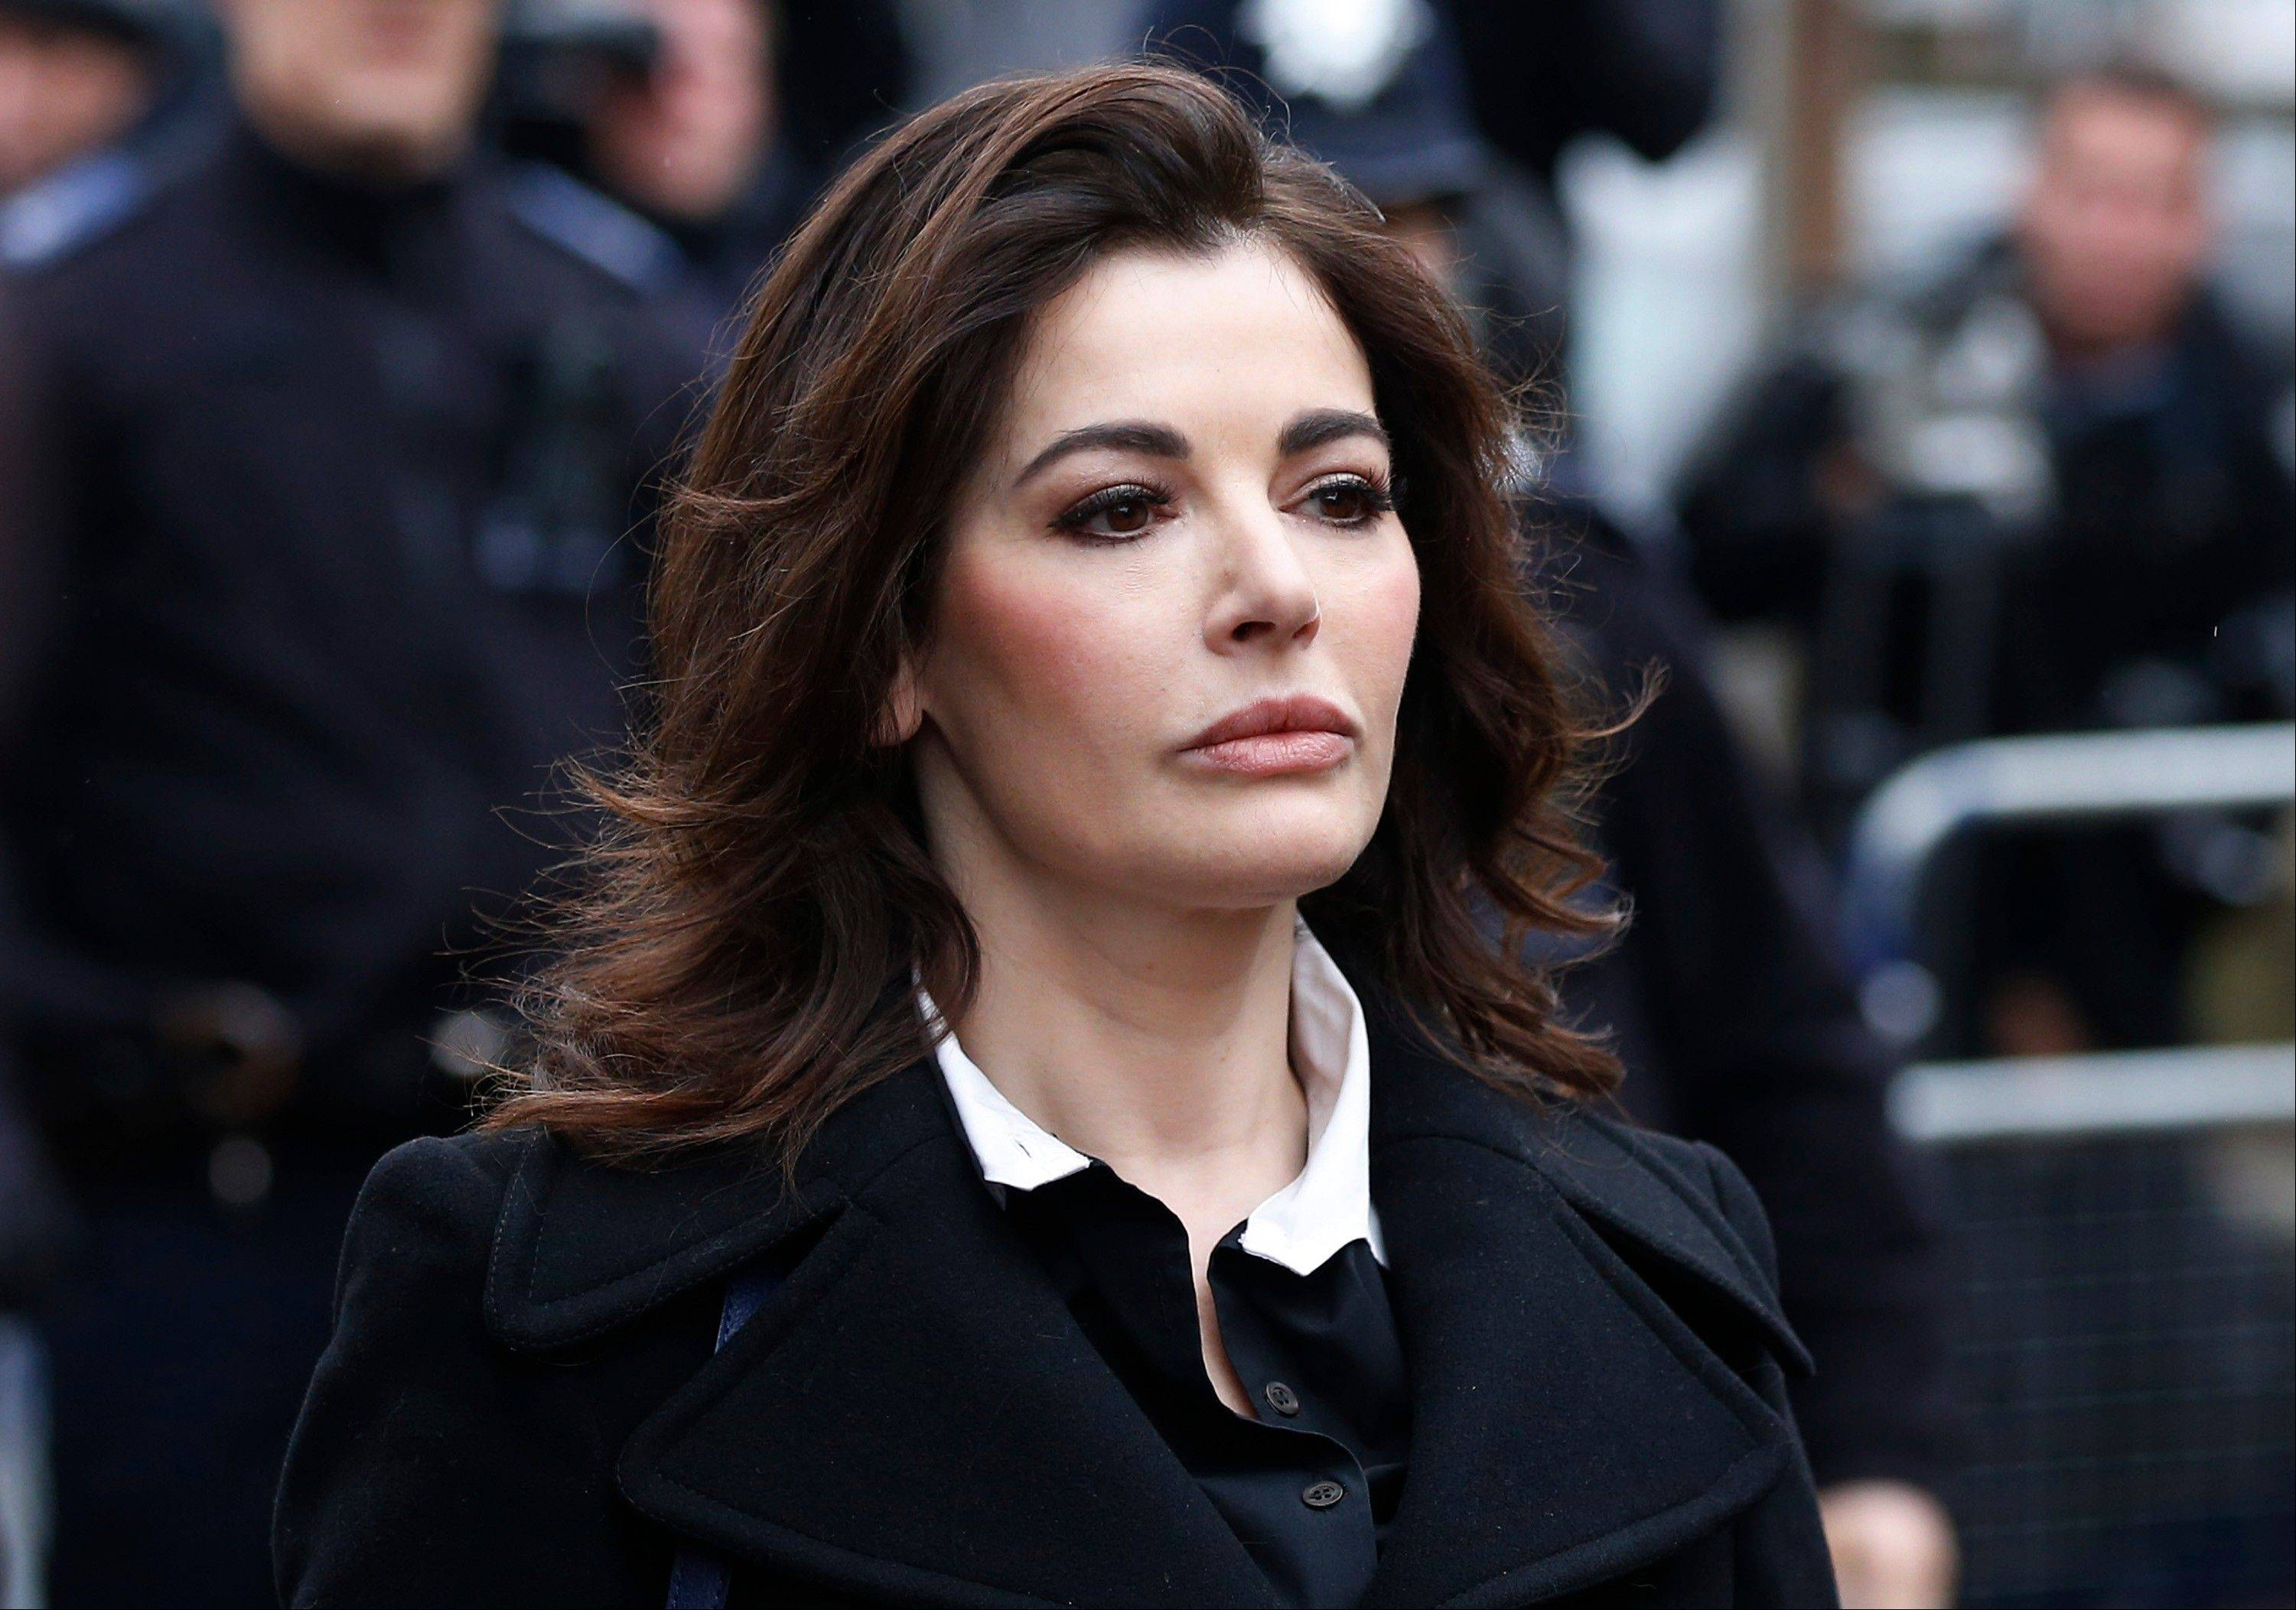 Two former assistants to Nigella Lawson and her former husband were acquitted of fraud Friday, Dec. 20, 2013 in London, capping a case where allegations of unauthorized spending on lavish goods were often overshadowed by titillating glimpses into the celebrity chef�s troubled home life.